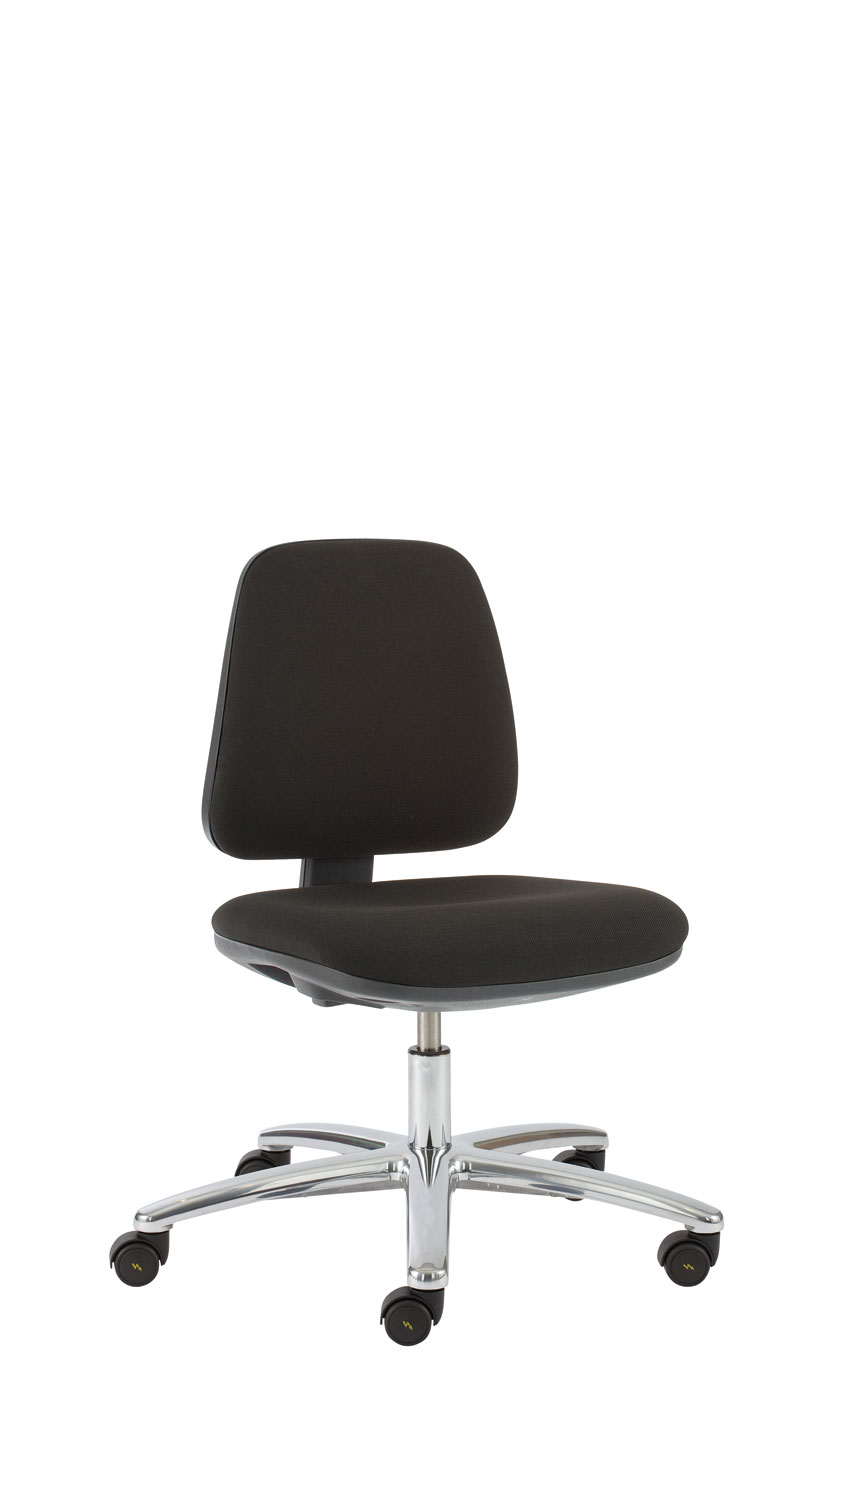 ANTISTATIC CHAIR ON ESD CASTORS